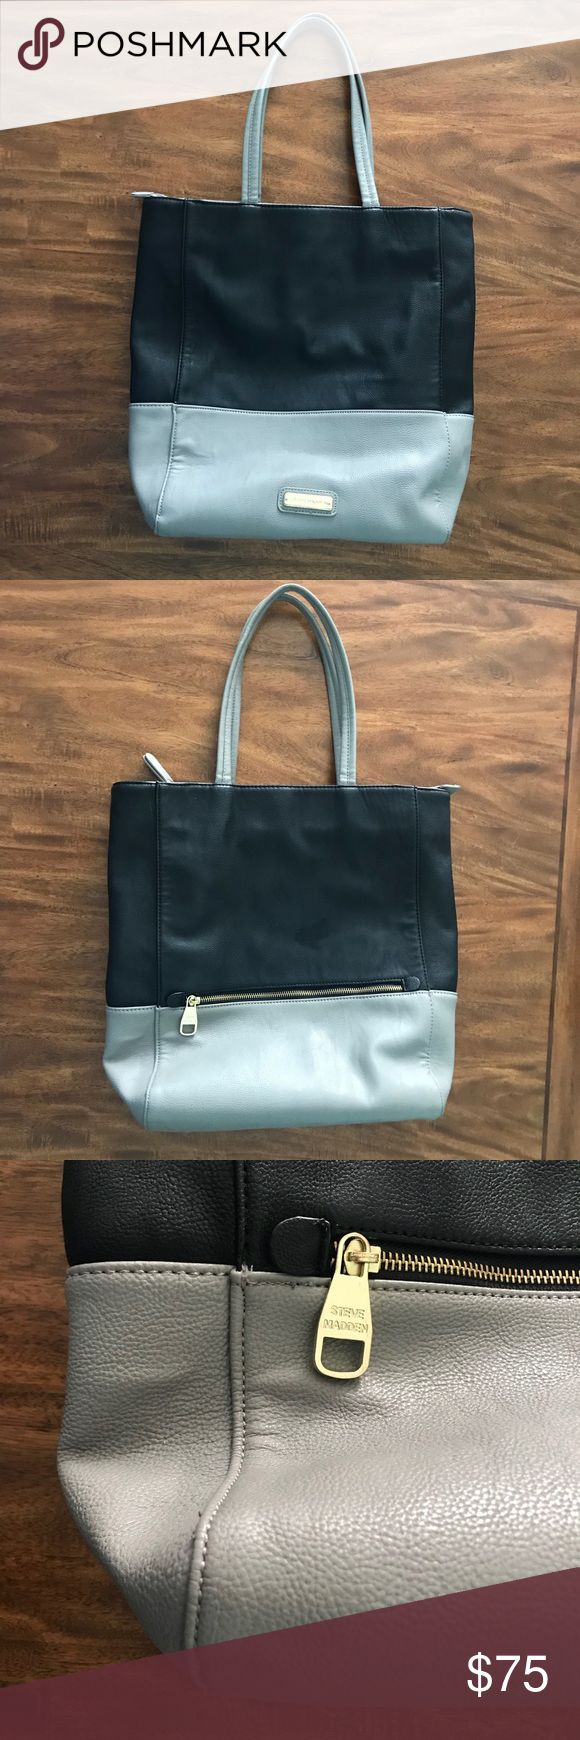 Steve Madden Zip Top Tote Faux Leather Two Tone Excellent used condition. No stains I could see inside, none outside except one tiny mark on the bottom shown in the last photo. The main logo on the front has a few scratches. Not super noticeable. This bag is super easy to clean. Can hold lots of stuff with pockets inside and one zipper pocket outside as well. It can fit my laptop as well as several other books. Only selling because I have so many bags. Steve Madden Bags Totes